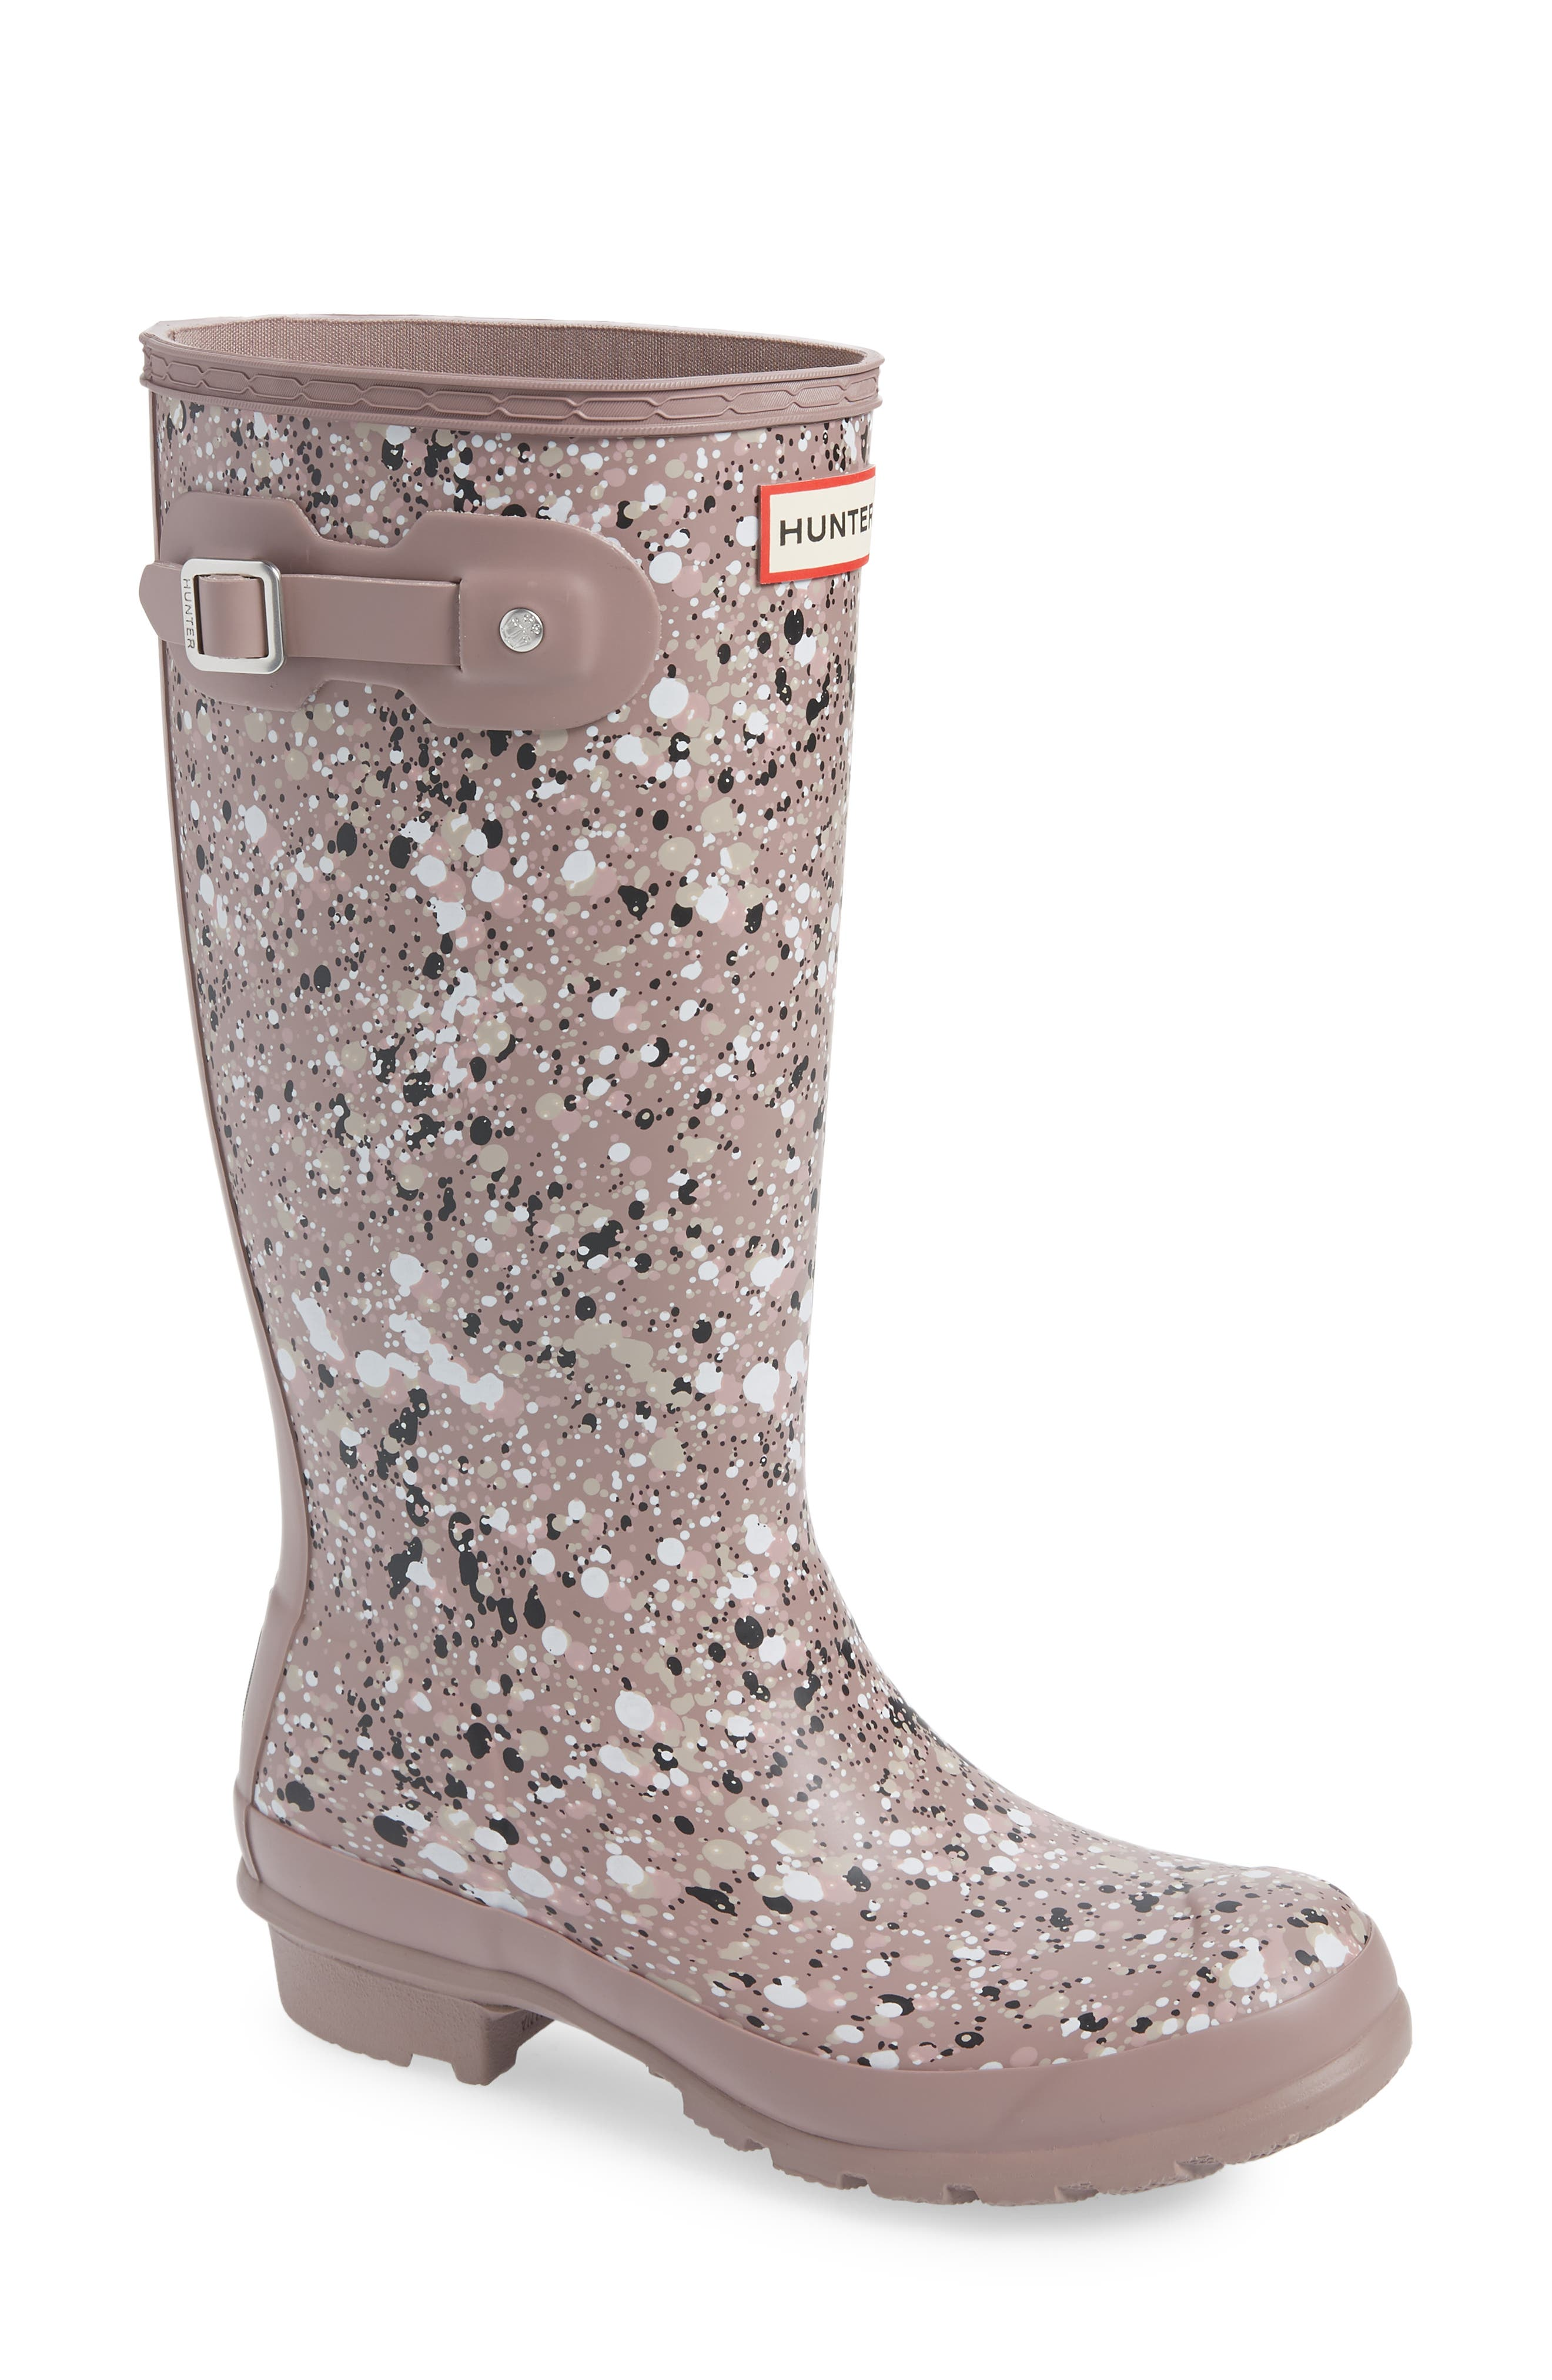 Image of Hunter Particle Print Rain Boots